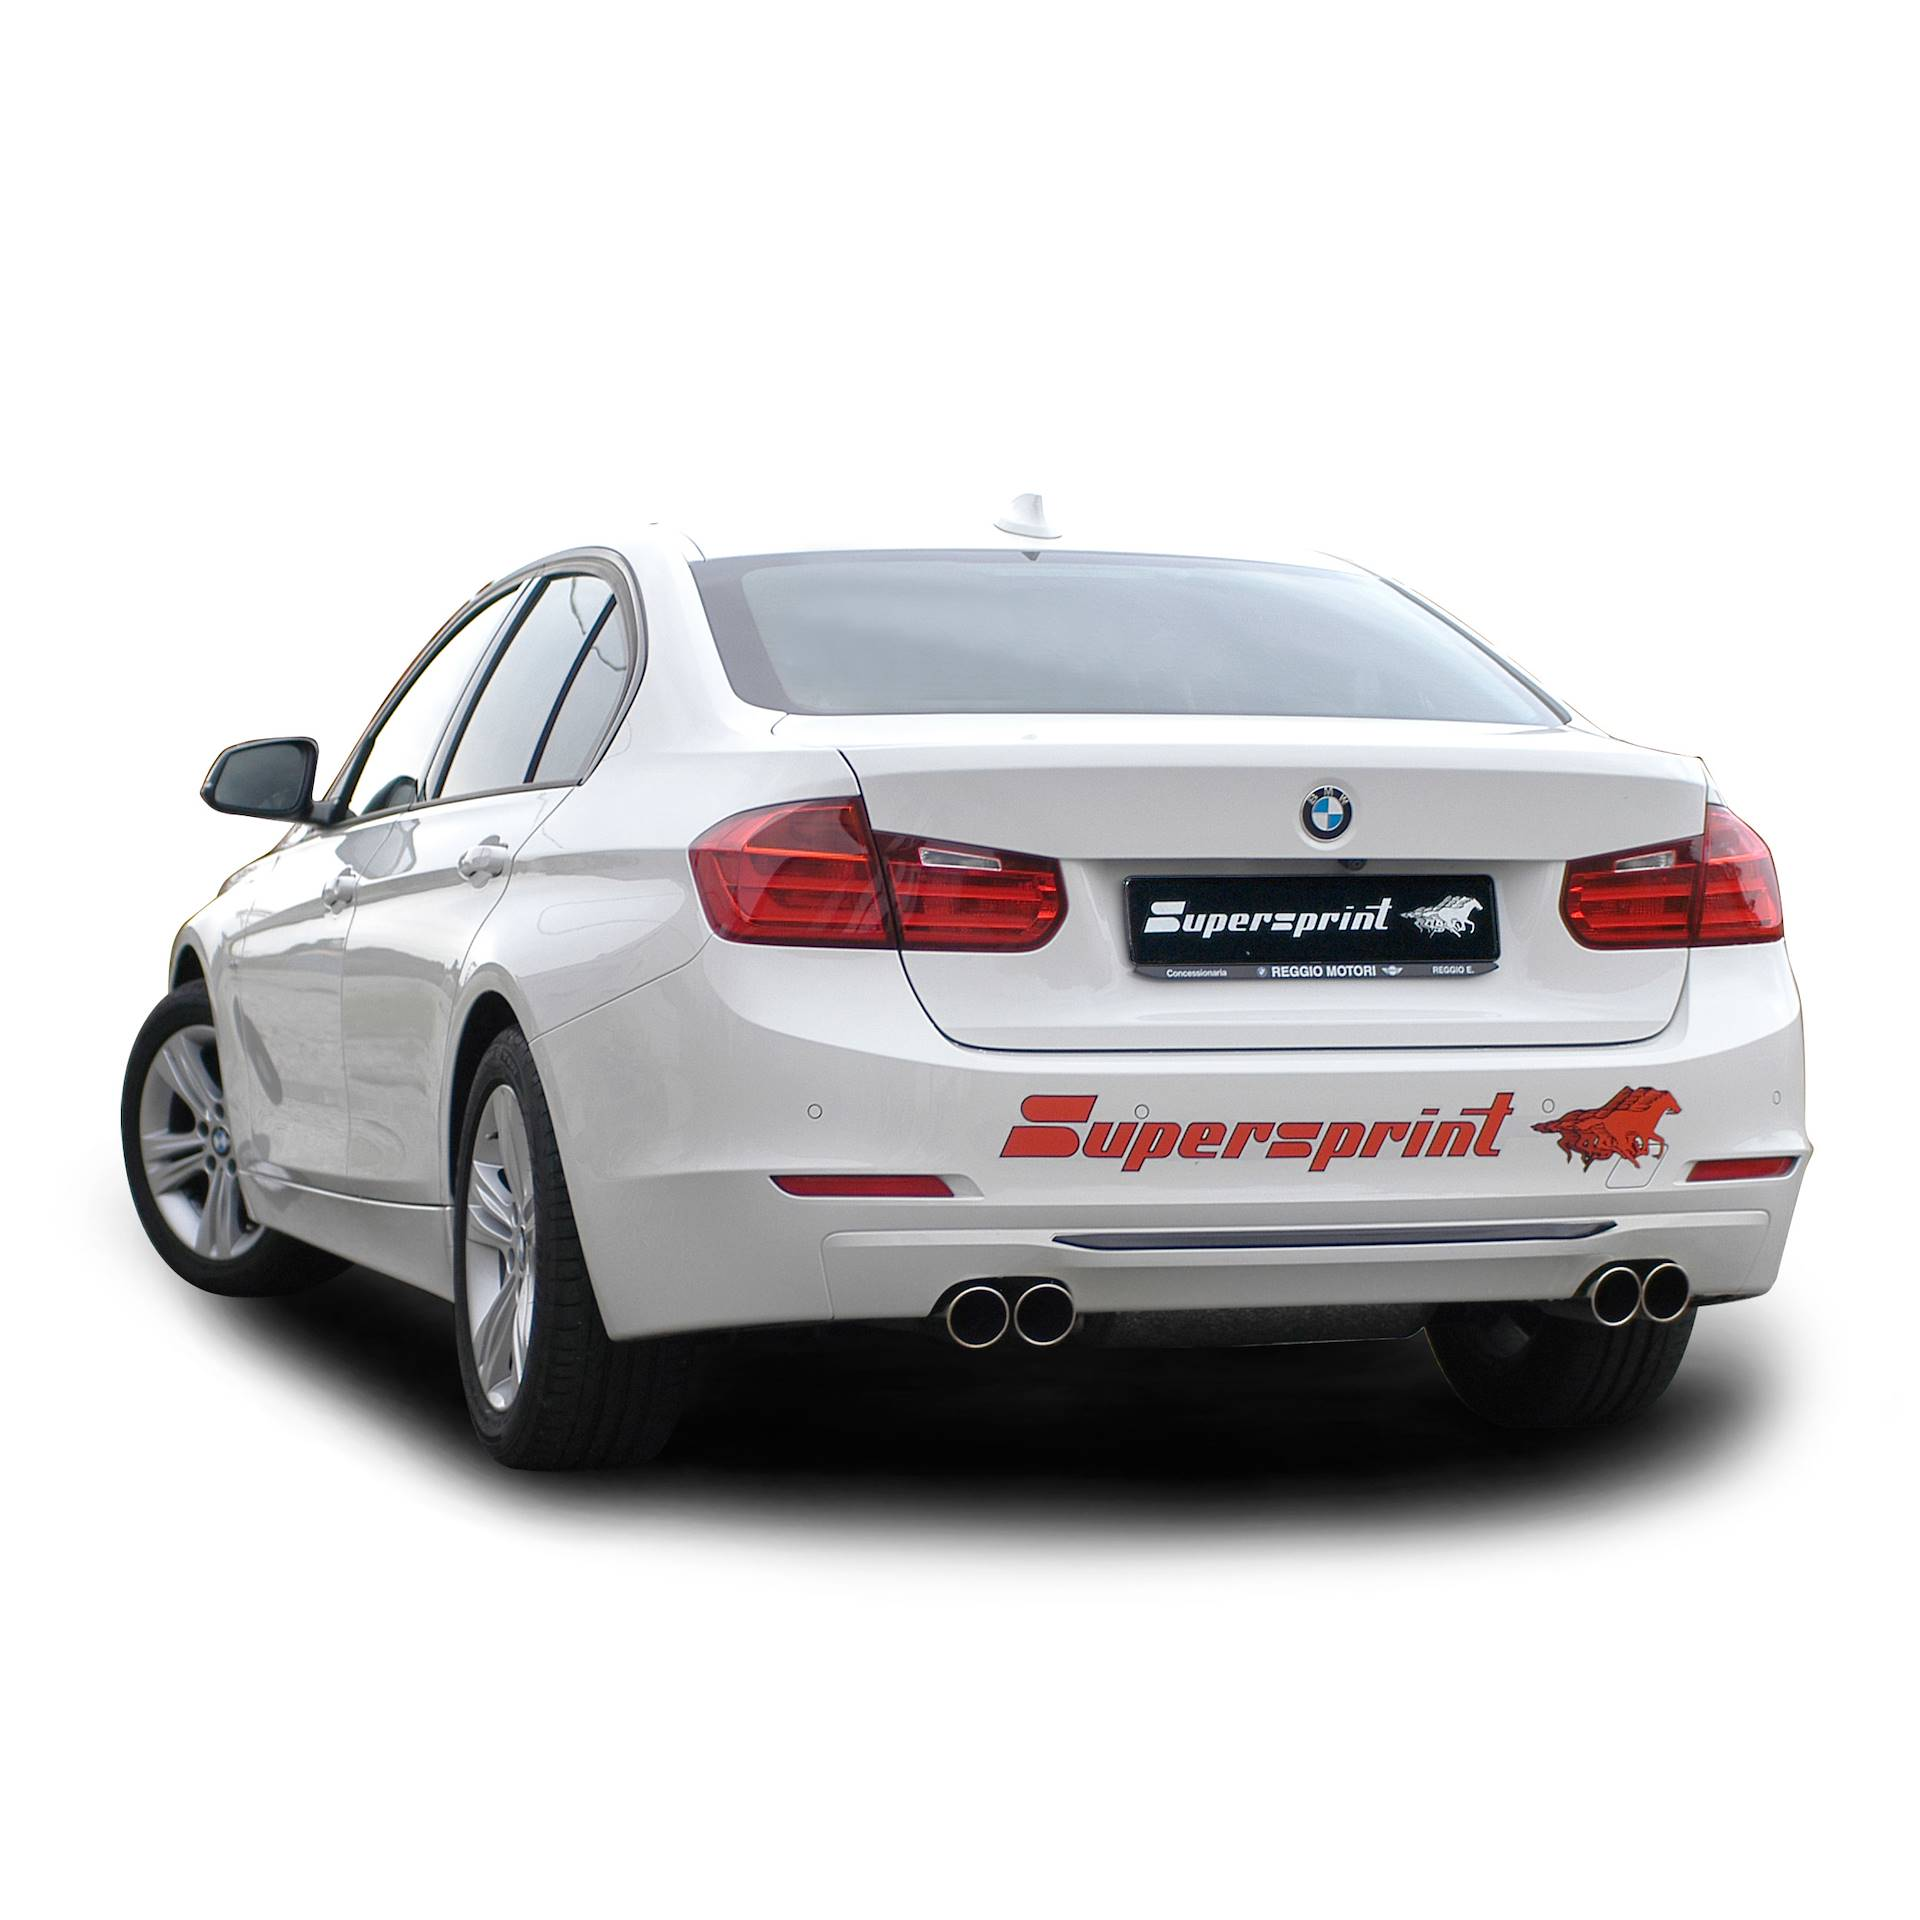 BMW - BMW F30 / F31 (Berline-Break) 316d ( N47 116 Hp) 2012 -> 2015